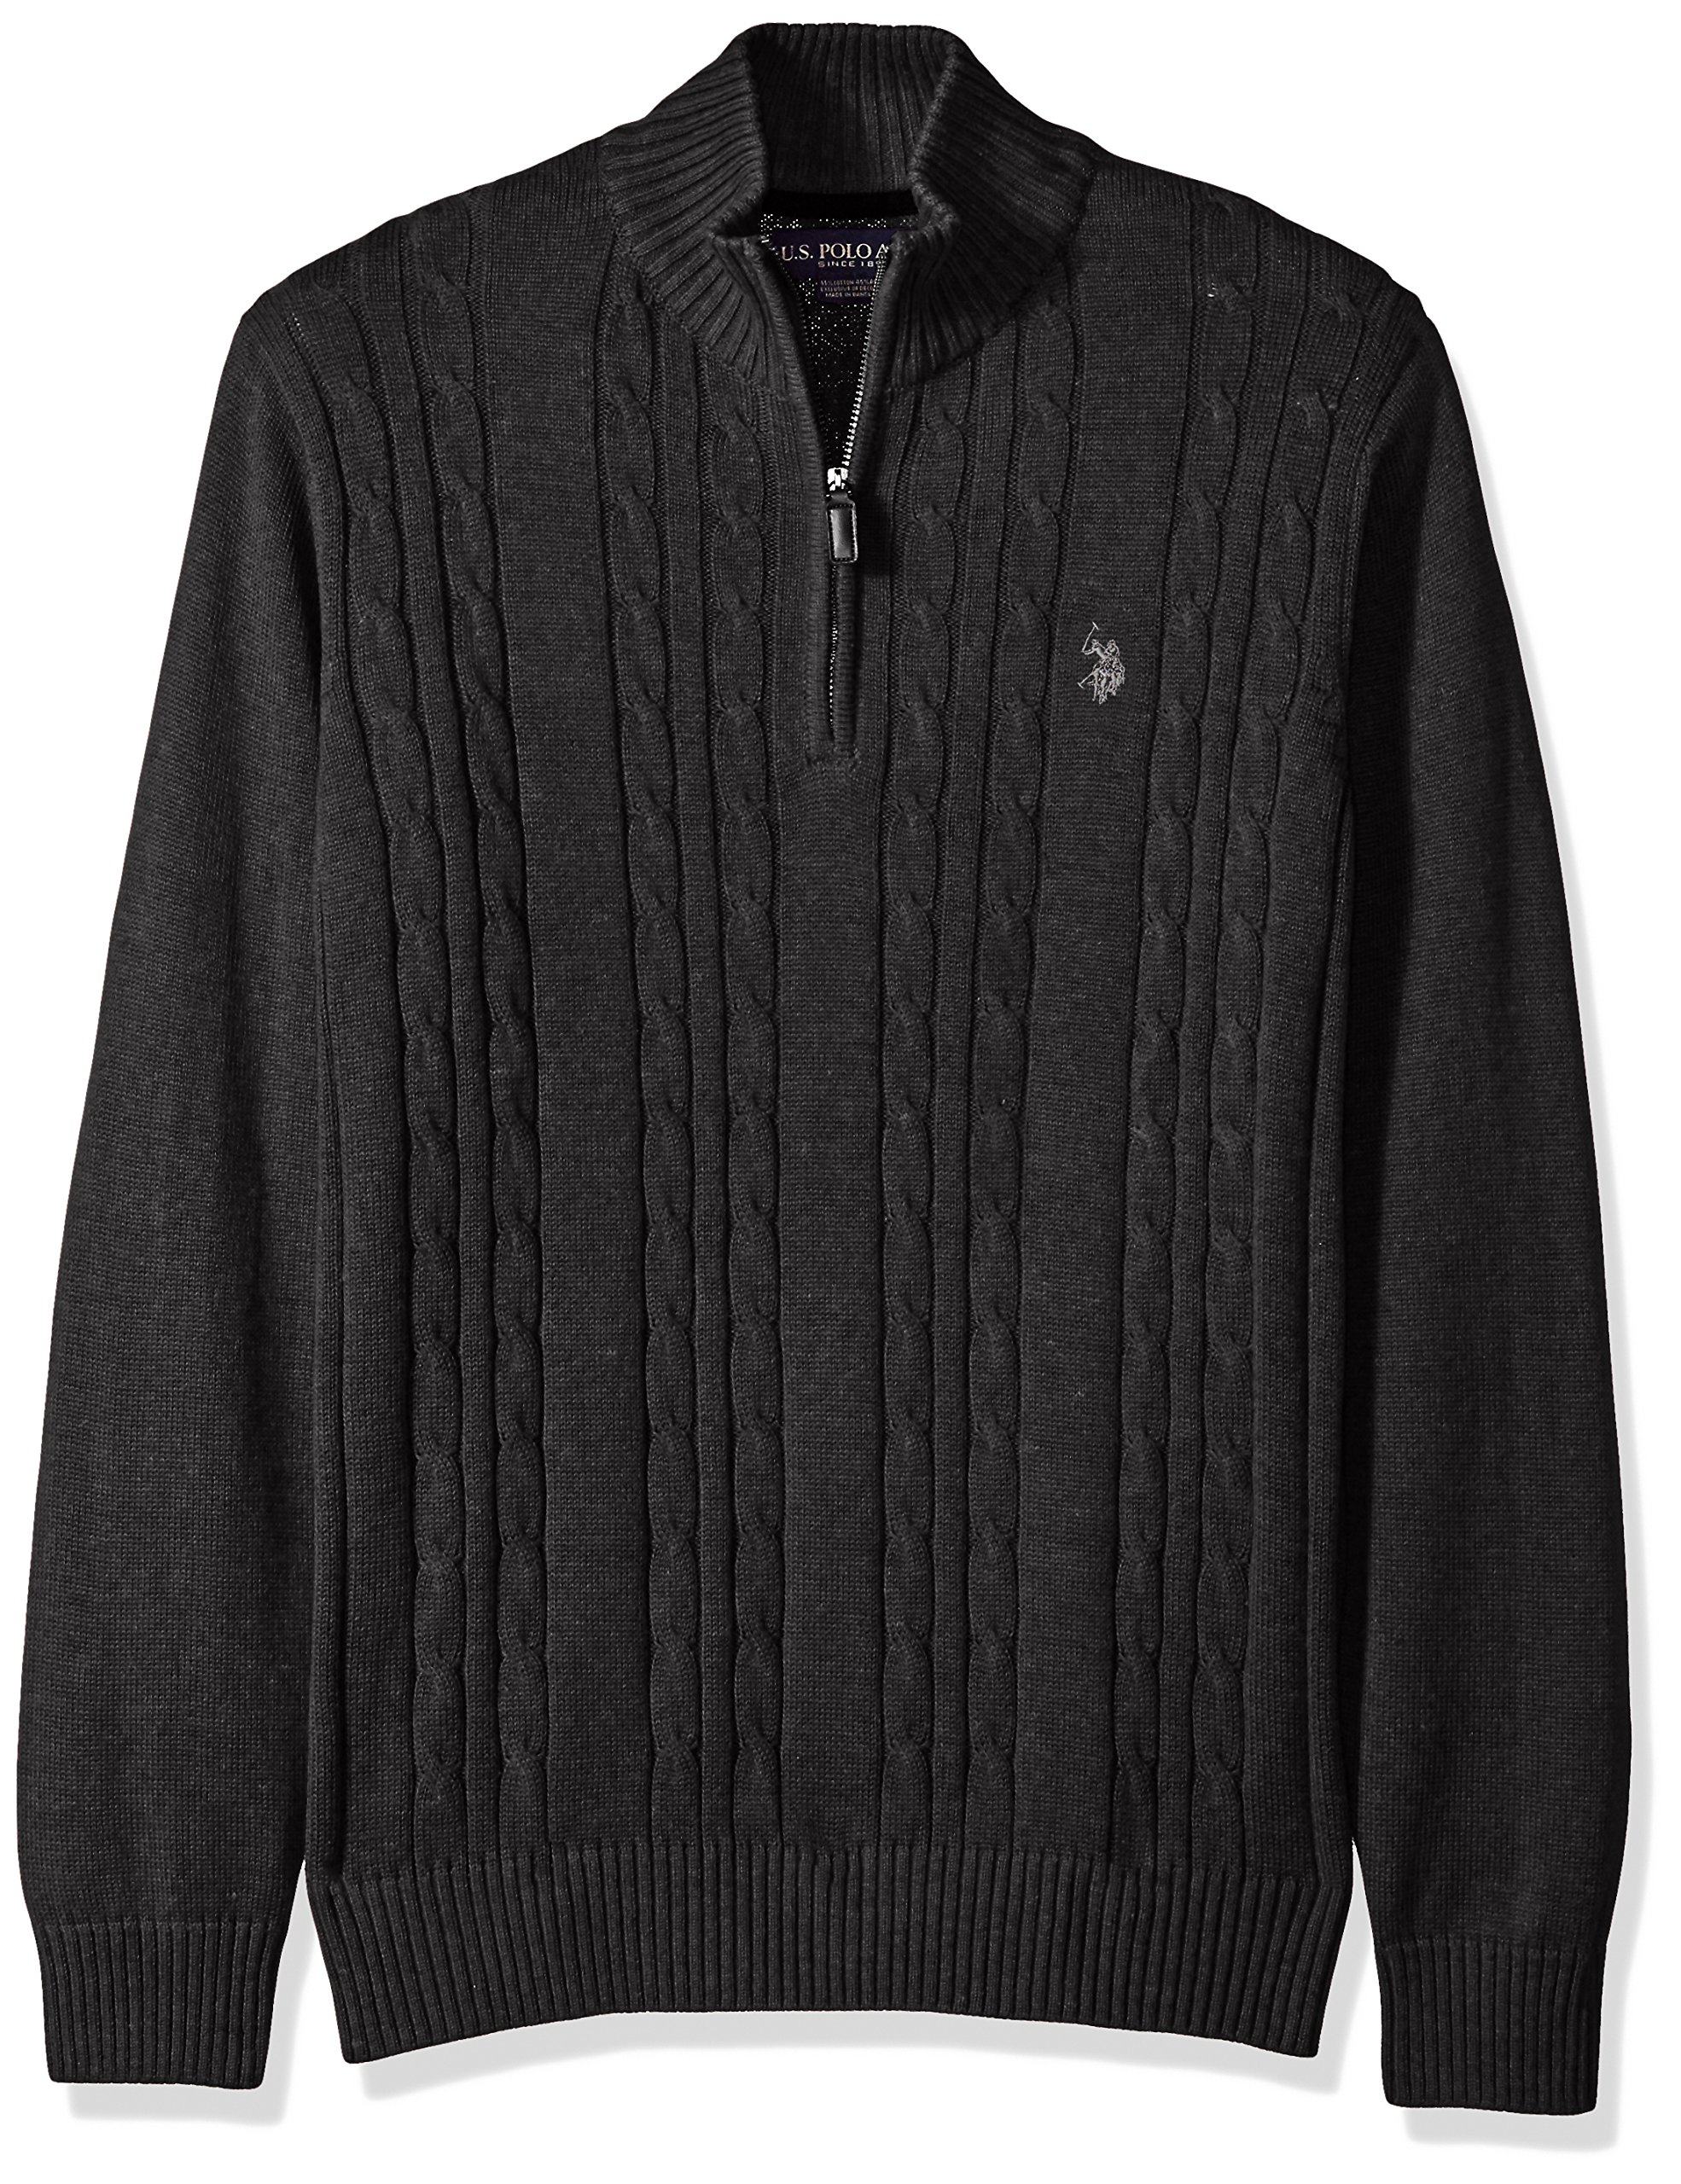 U.S. Polo Assn. Men's Cable Knit 1/4 Zip Sweater, Charcoal Heather, Medium by U.S. Polo Assn.